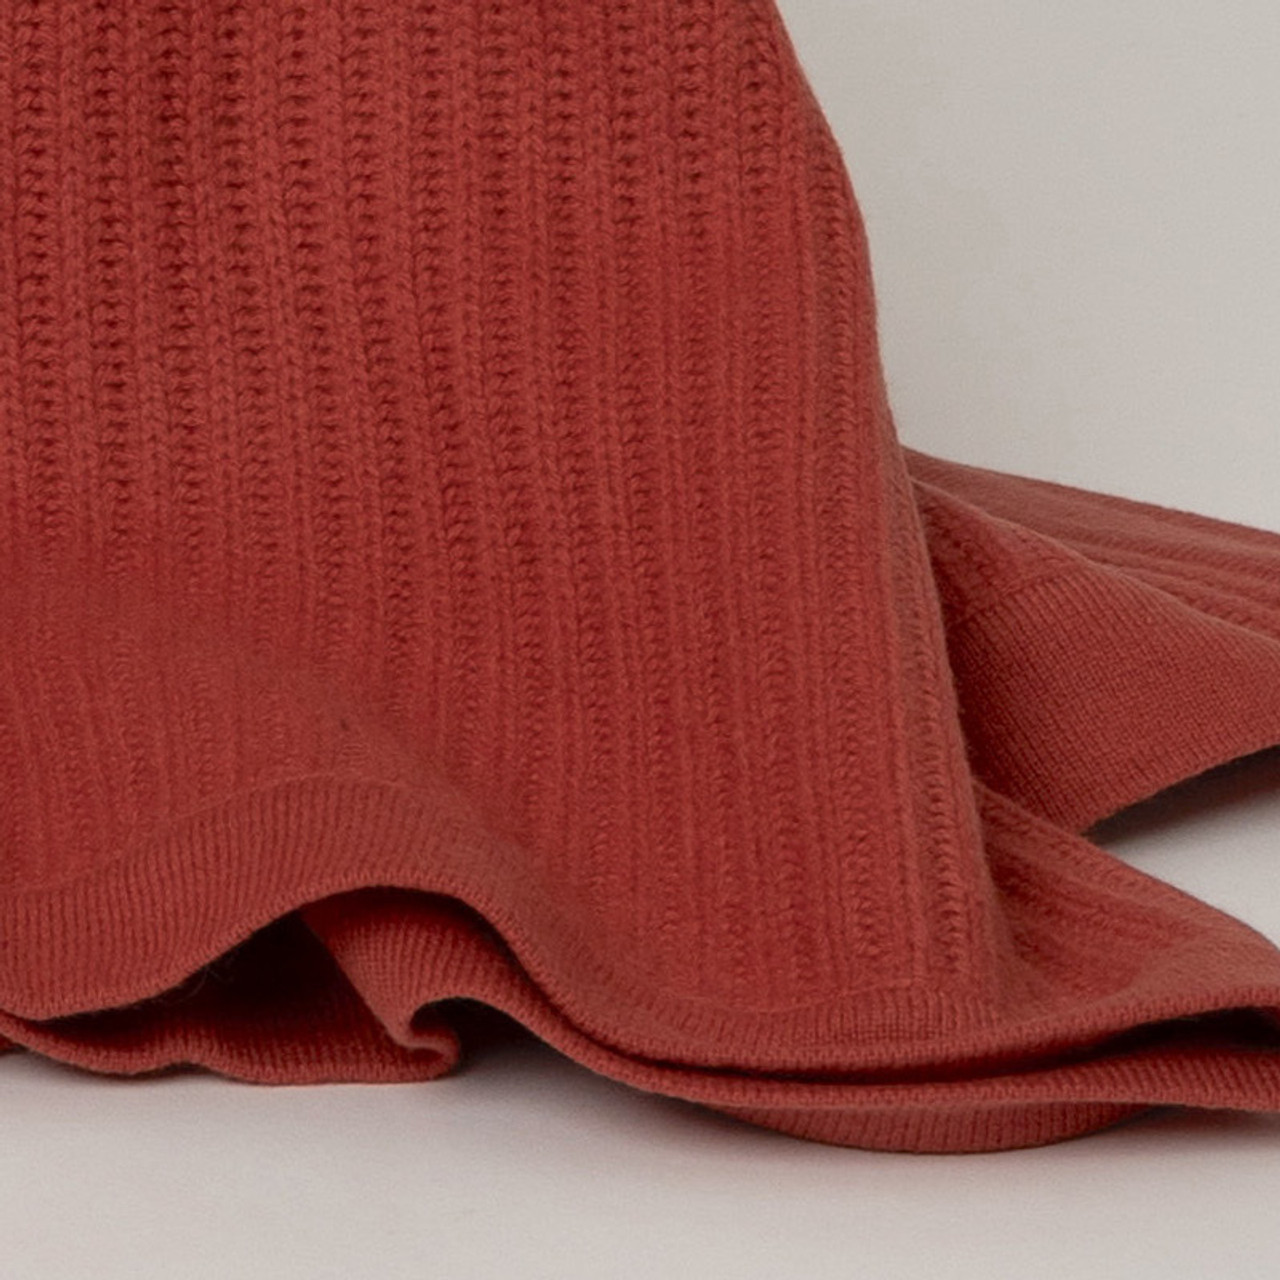 Rust Fisherman's Knit Cashmere Throw